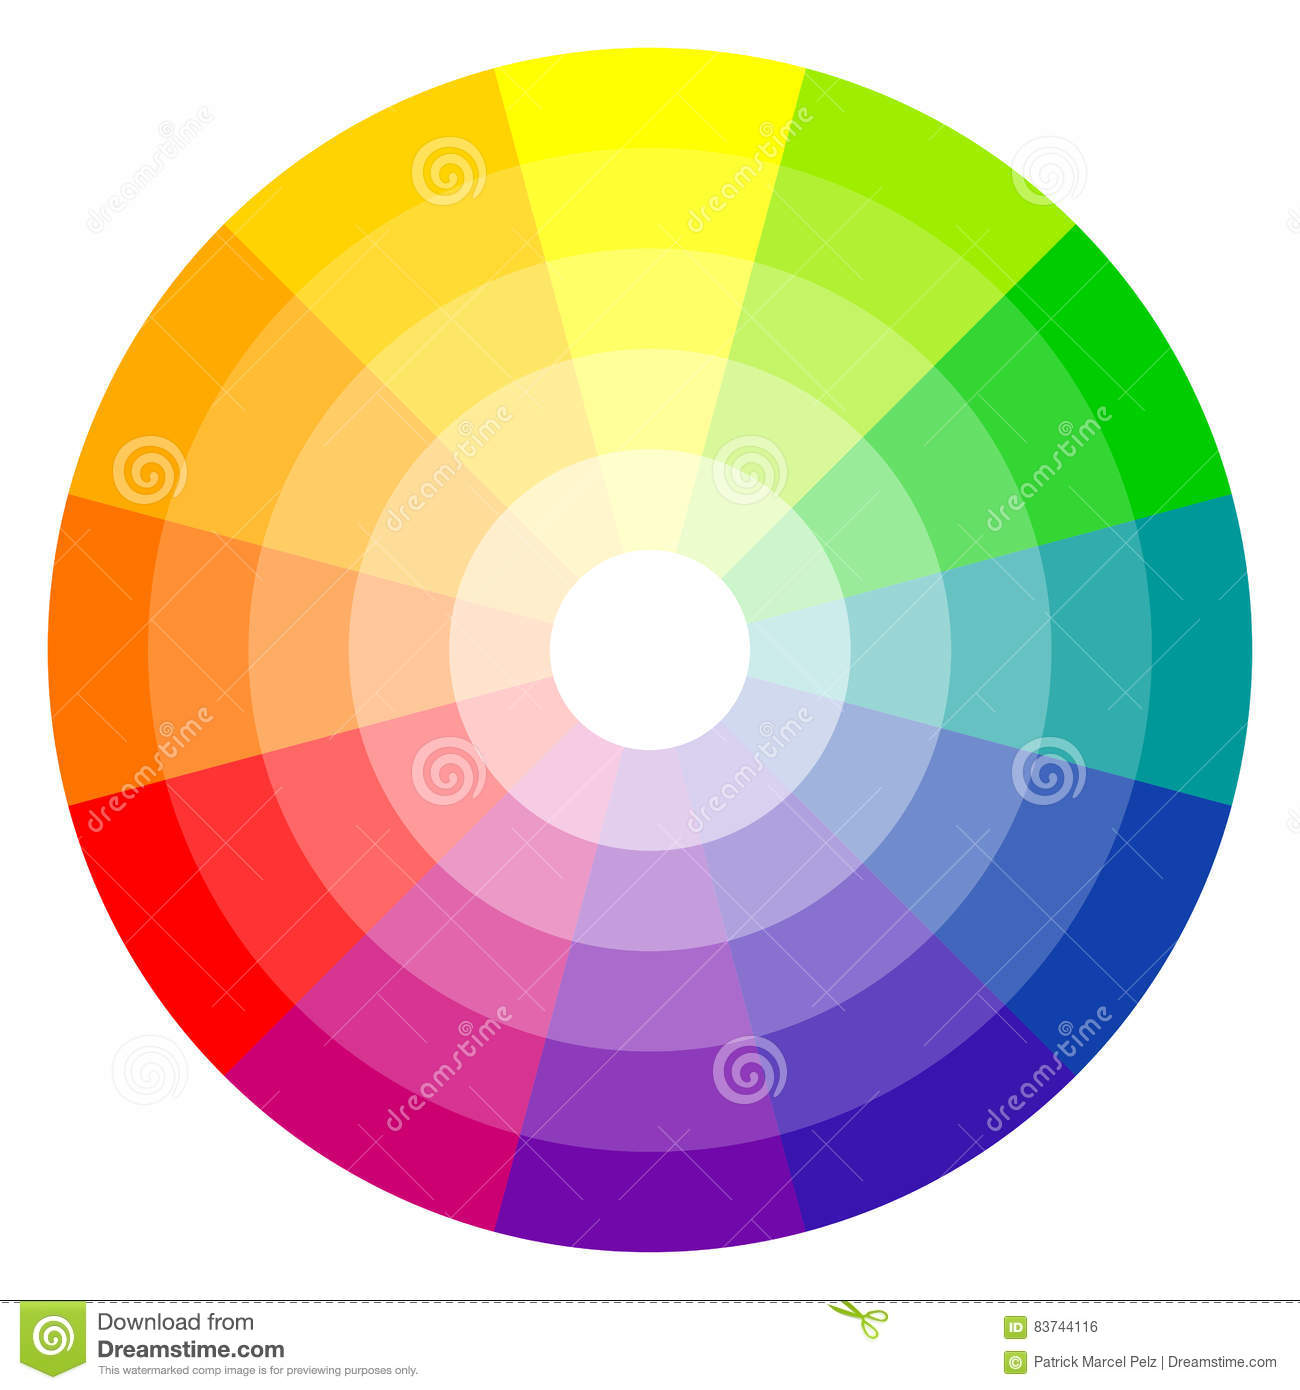 Color Wheel 12 Colors Stock Vector Illustration Of Green 83744116